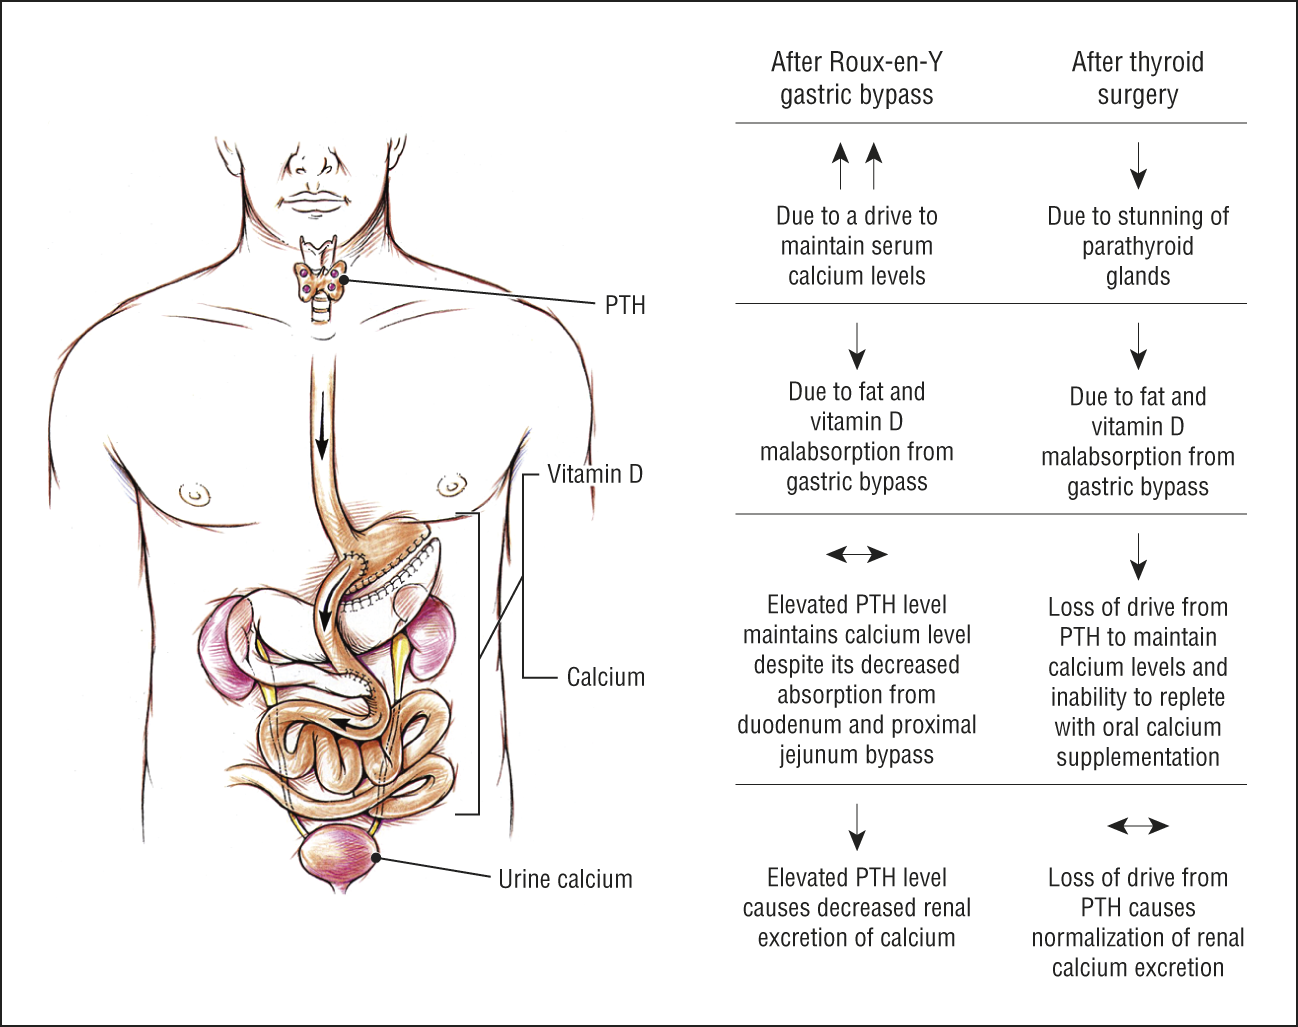 Severe Hypocalcemia Complicating Thyroid Surgery After Roux En Y